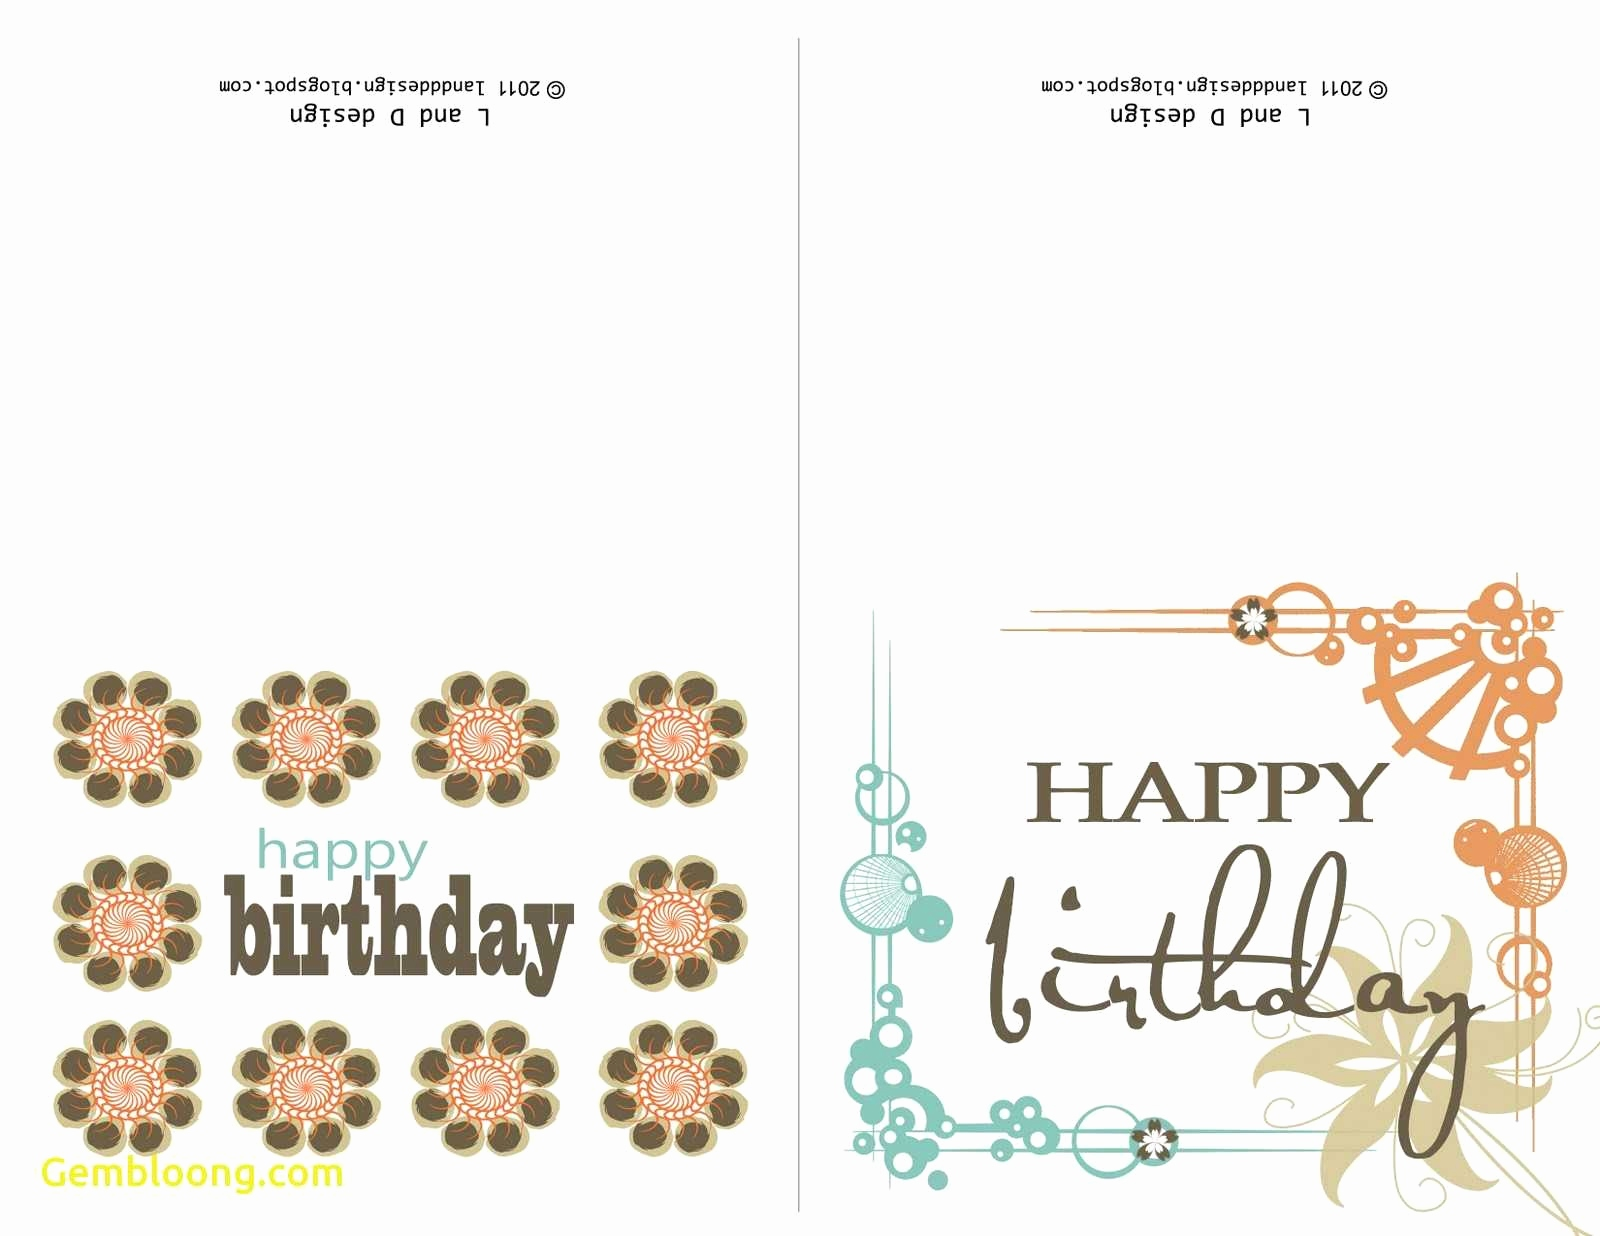 printable romantic birthday cards for her ; printable-romantic-birthday-cards-for-her-beautiful-printable-birthday-card-for-husband-linksof-london-of-printable-romantic-birthday-cards-for-her